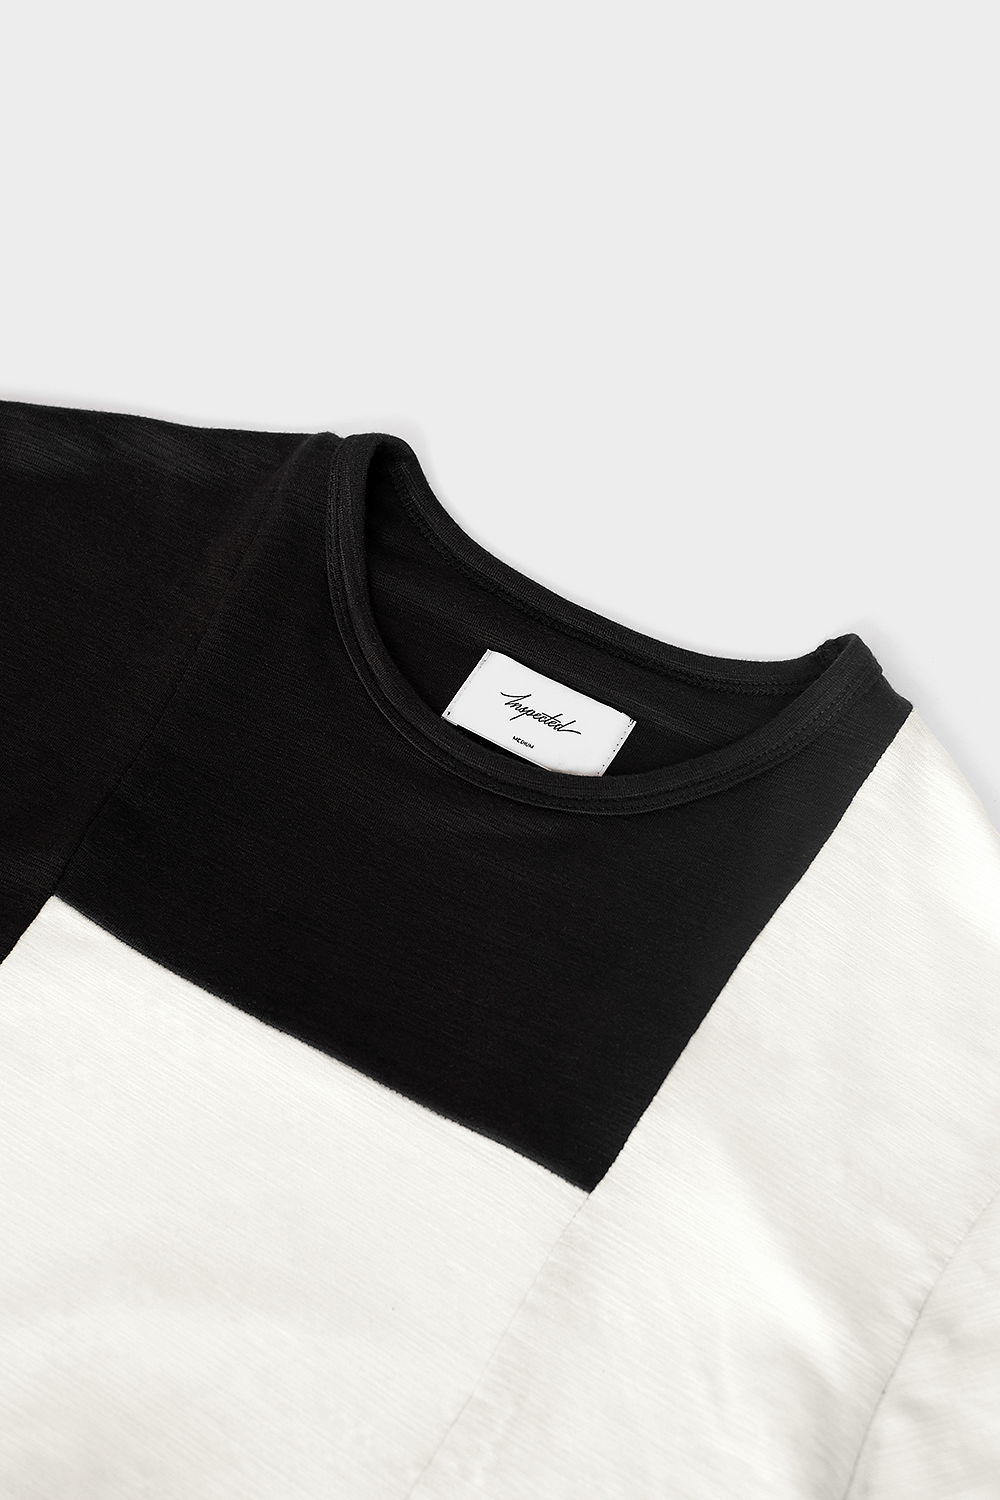 Affinity Tee — 3-in-1